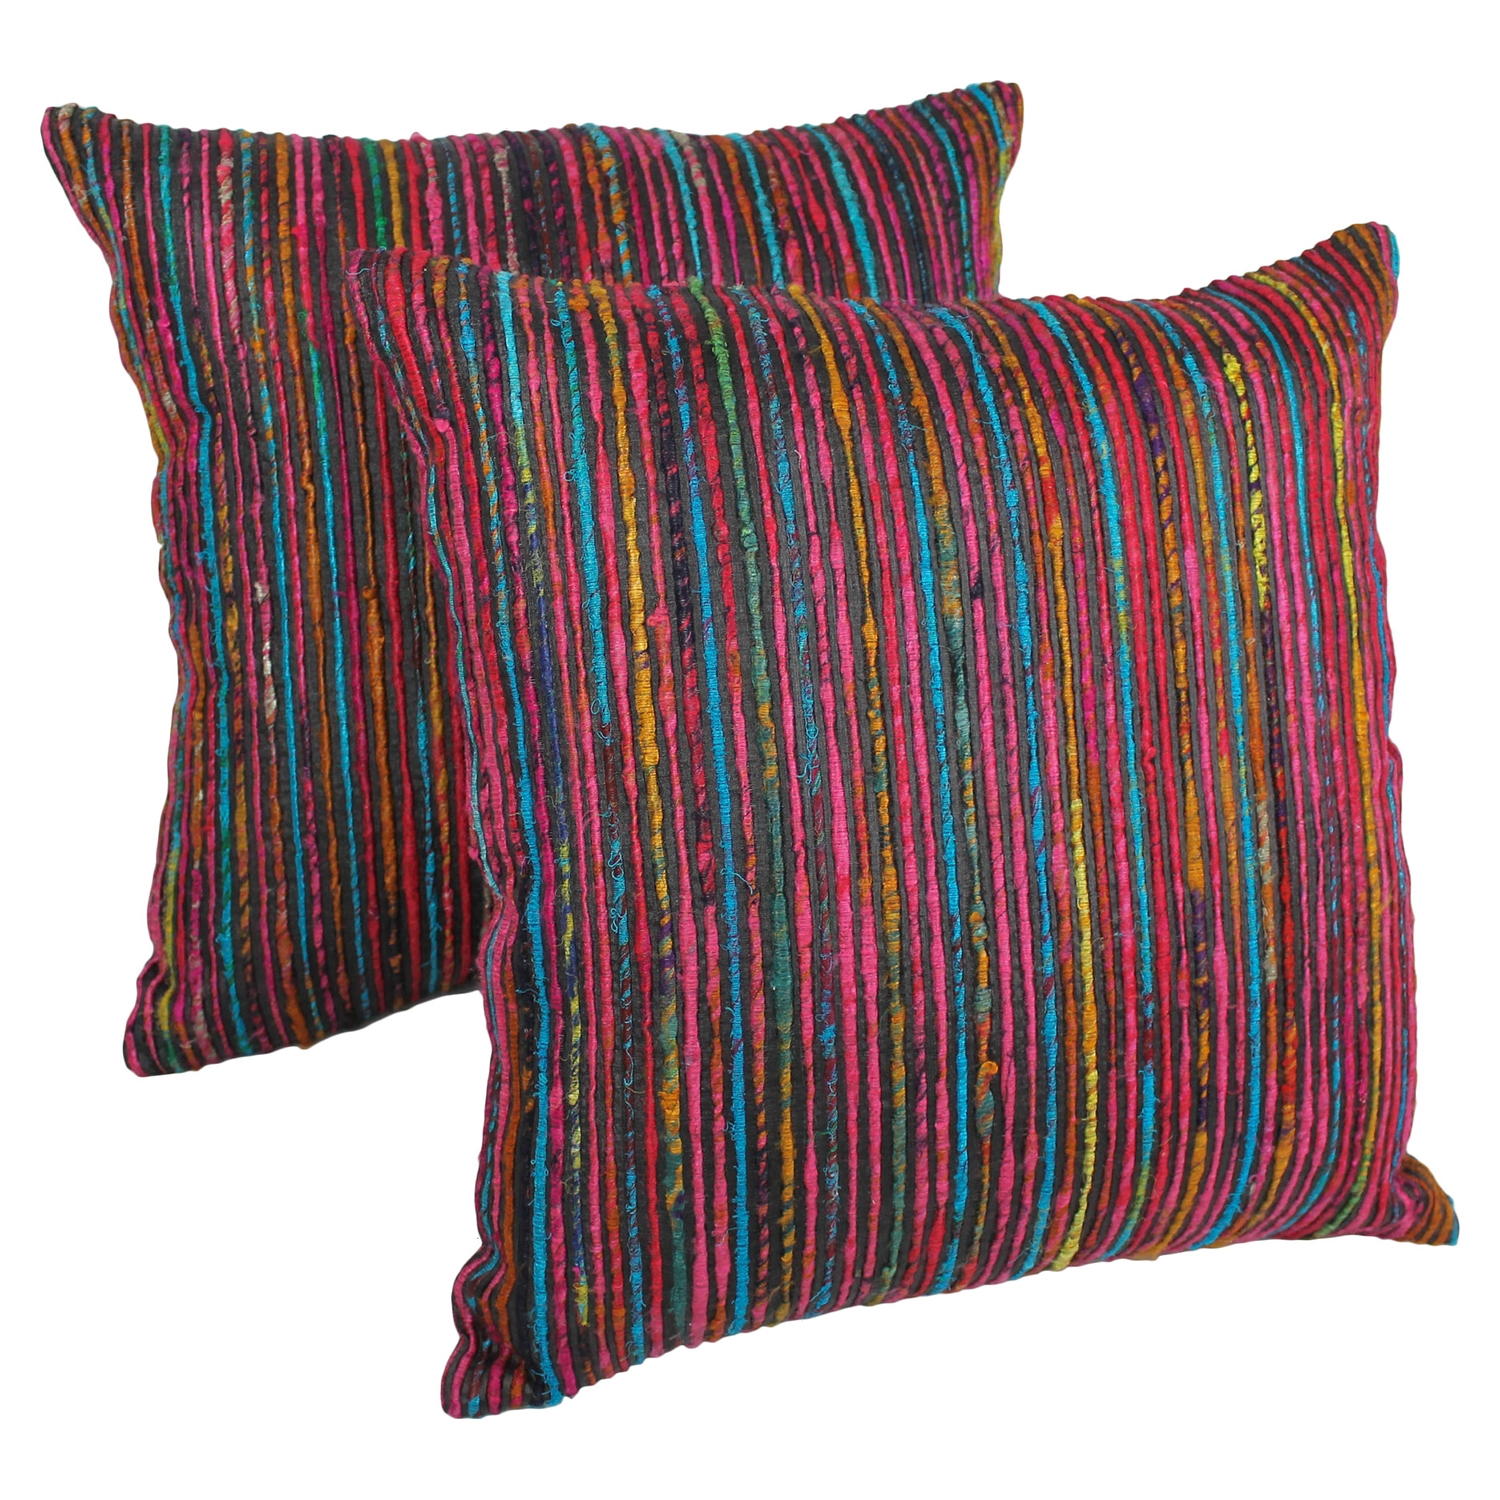 "20"" Throw Pillows - Rainbow Yarn and Black Fabric (Set of 2) - BLZ-IE-20-YRN-S2-RBW-BK"